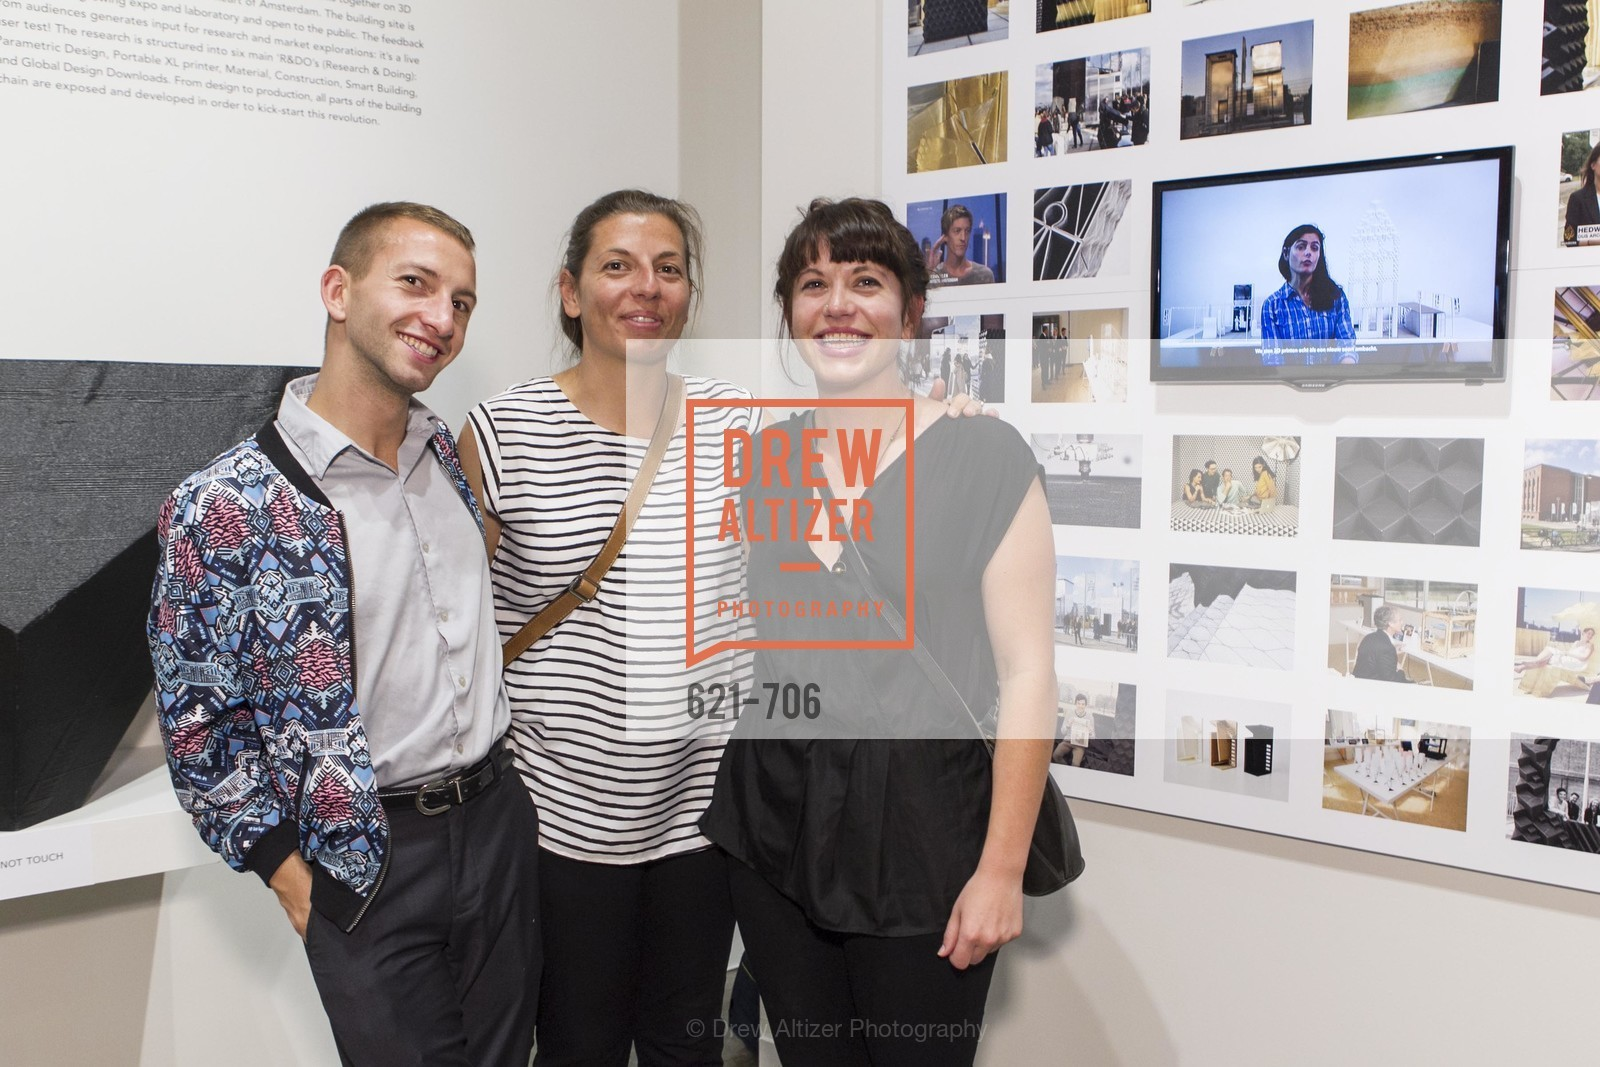 Kaden Freeman, Anne Joiner, Kate Joiner, Exhibit Opening at the MUSEUM OF CRAFT AND DESIGN - Hands Off: New Dutch Design at the Confluence of Technology & Craft, US, May 8th, 2015,Drew Altizer, Drew Altizer Photography, full-service agency, private events, San Francisco photographer, photographer california